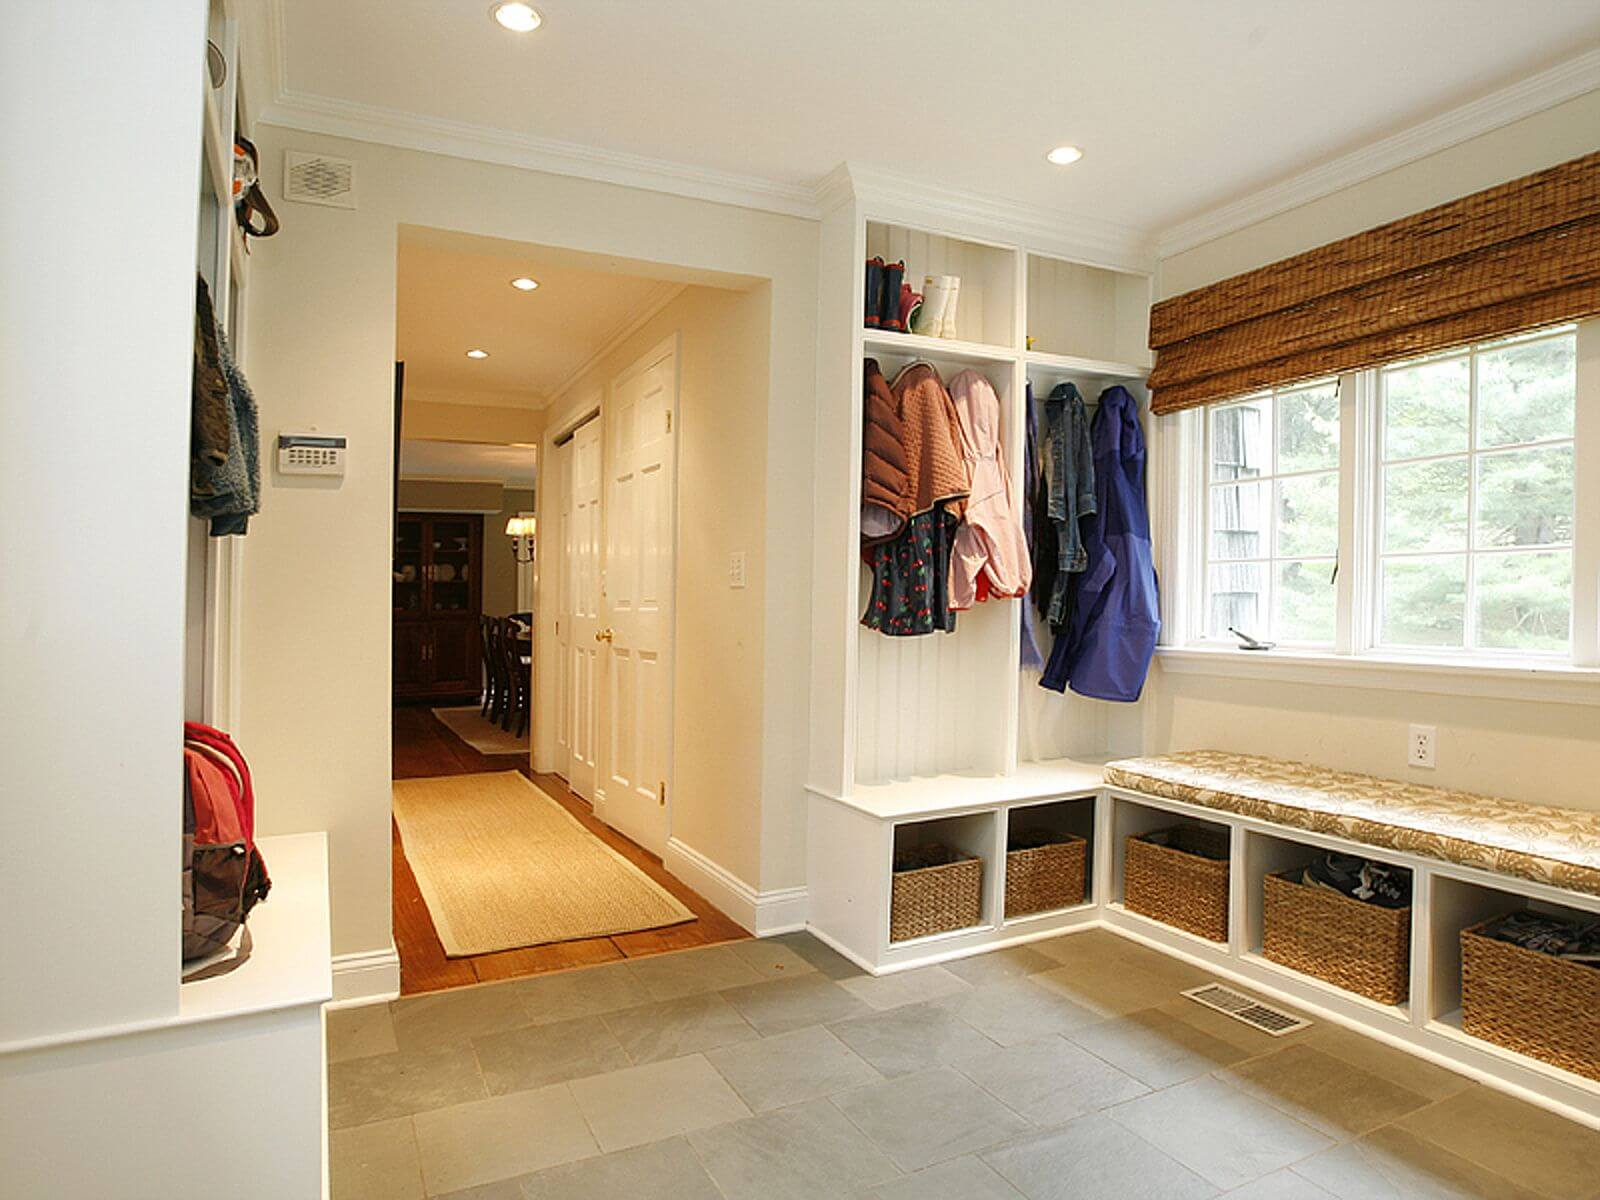 home plans with mudroom 45 superb mudroom entryway design ideas with benches and storage lockers pictures home 2552